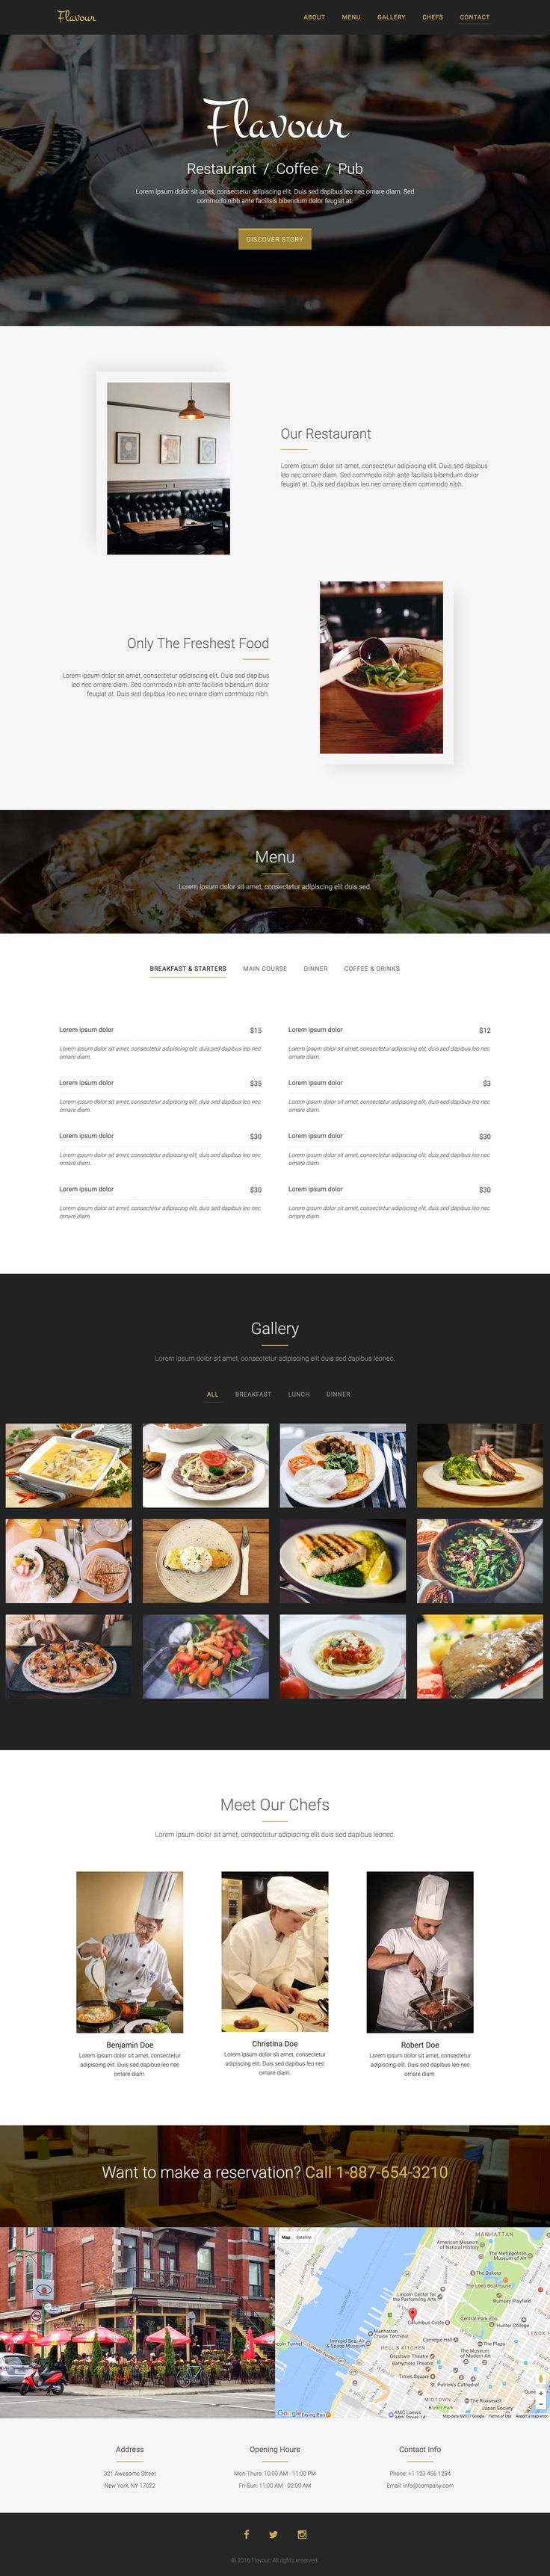 u0027Flavouru0027 is a One Page HTML template